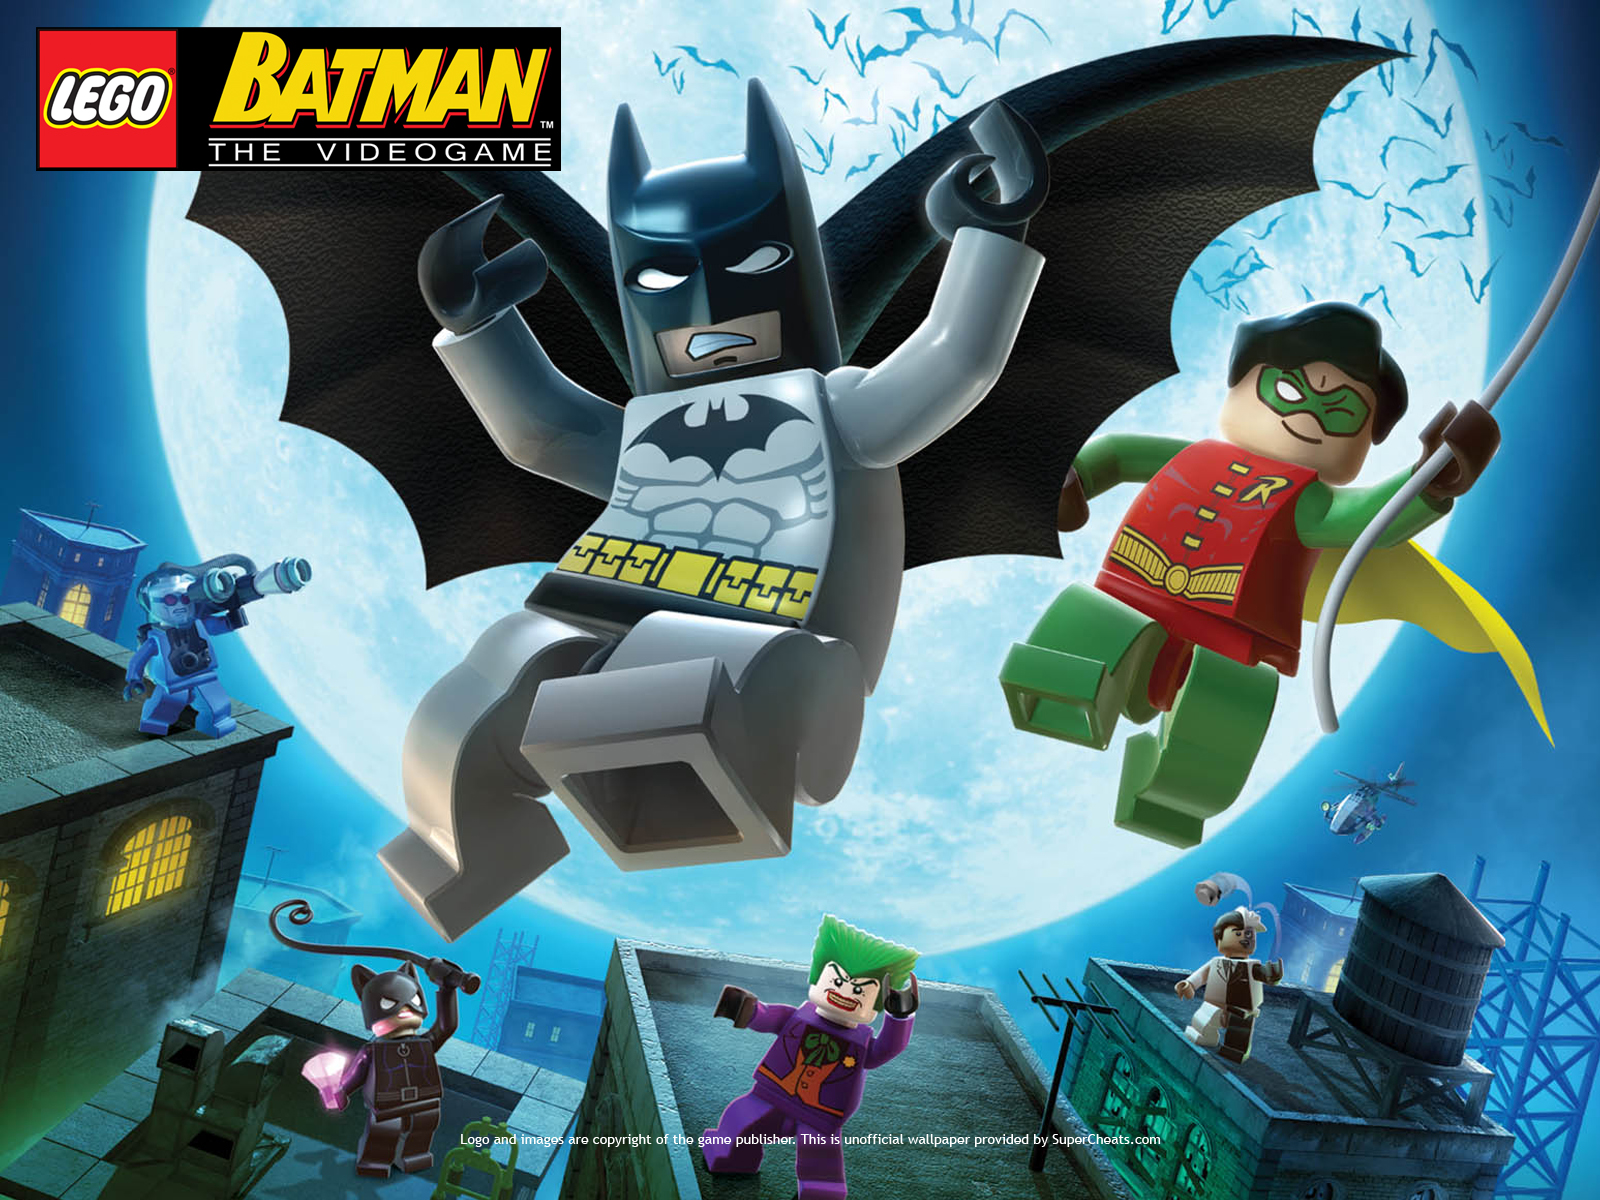 LEGO Batman: The Videogame High Quality Background on Wallpapers Vista